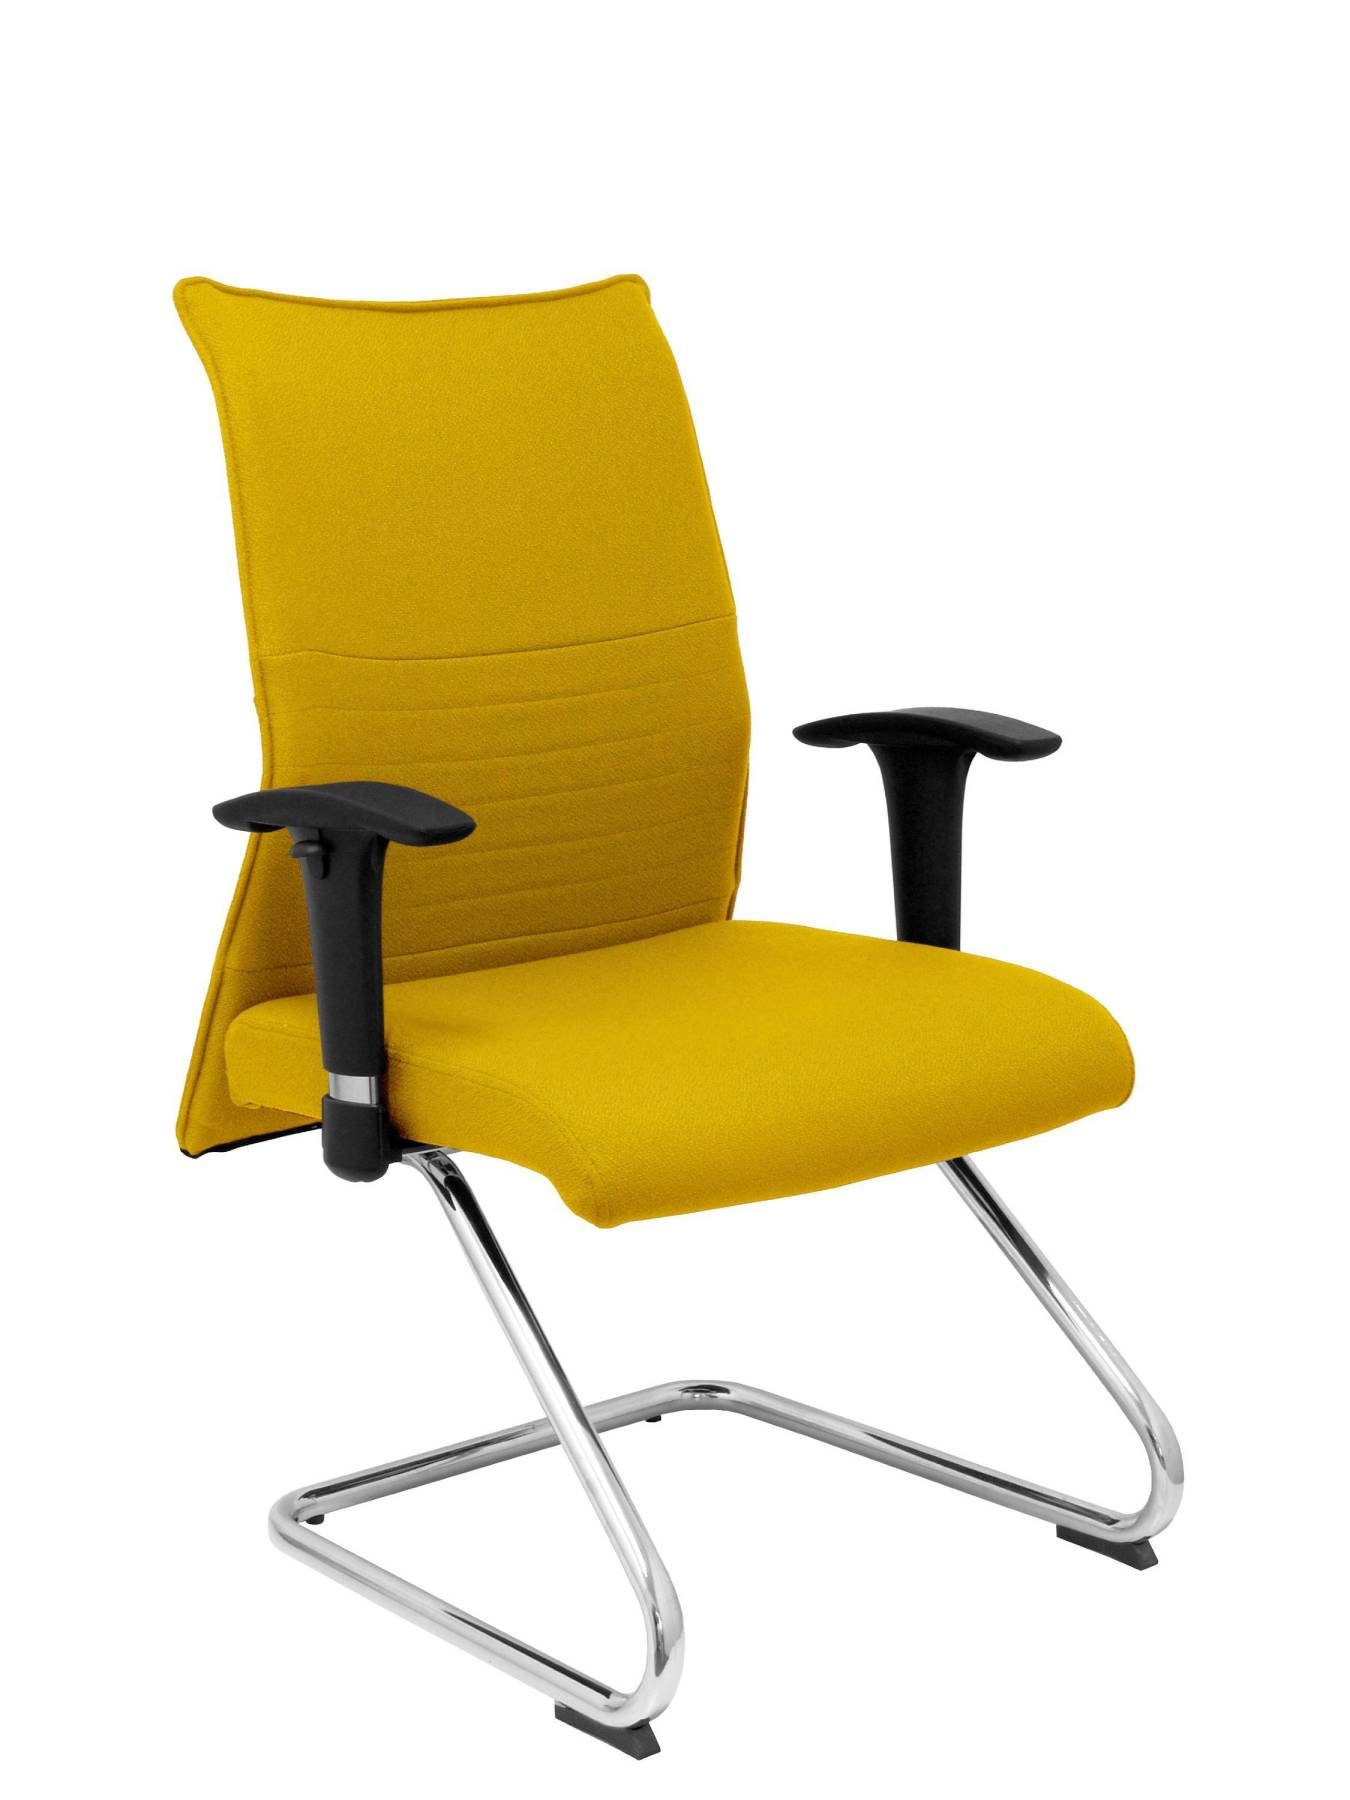 Armchair Confidante Ergonomic For Visits With Skate Chrome Up Seat And Backstop Upholstered In BALI Tissue Color Amaril